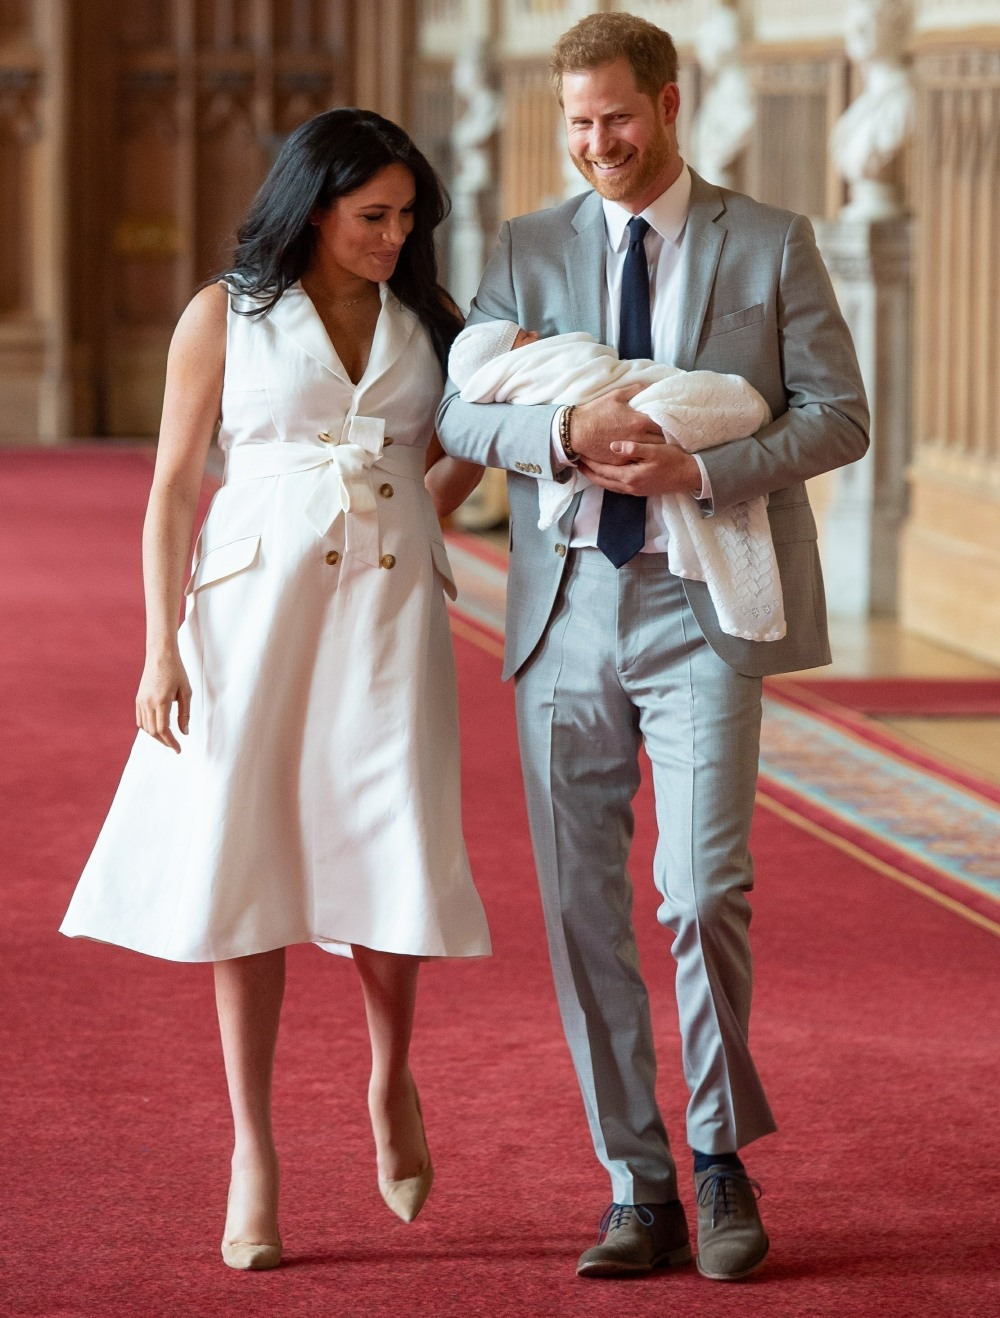 Prince Harry, Duke of Sussex and Meghan, Duchess of Sussex, pose with their newborn son